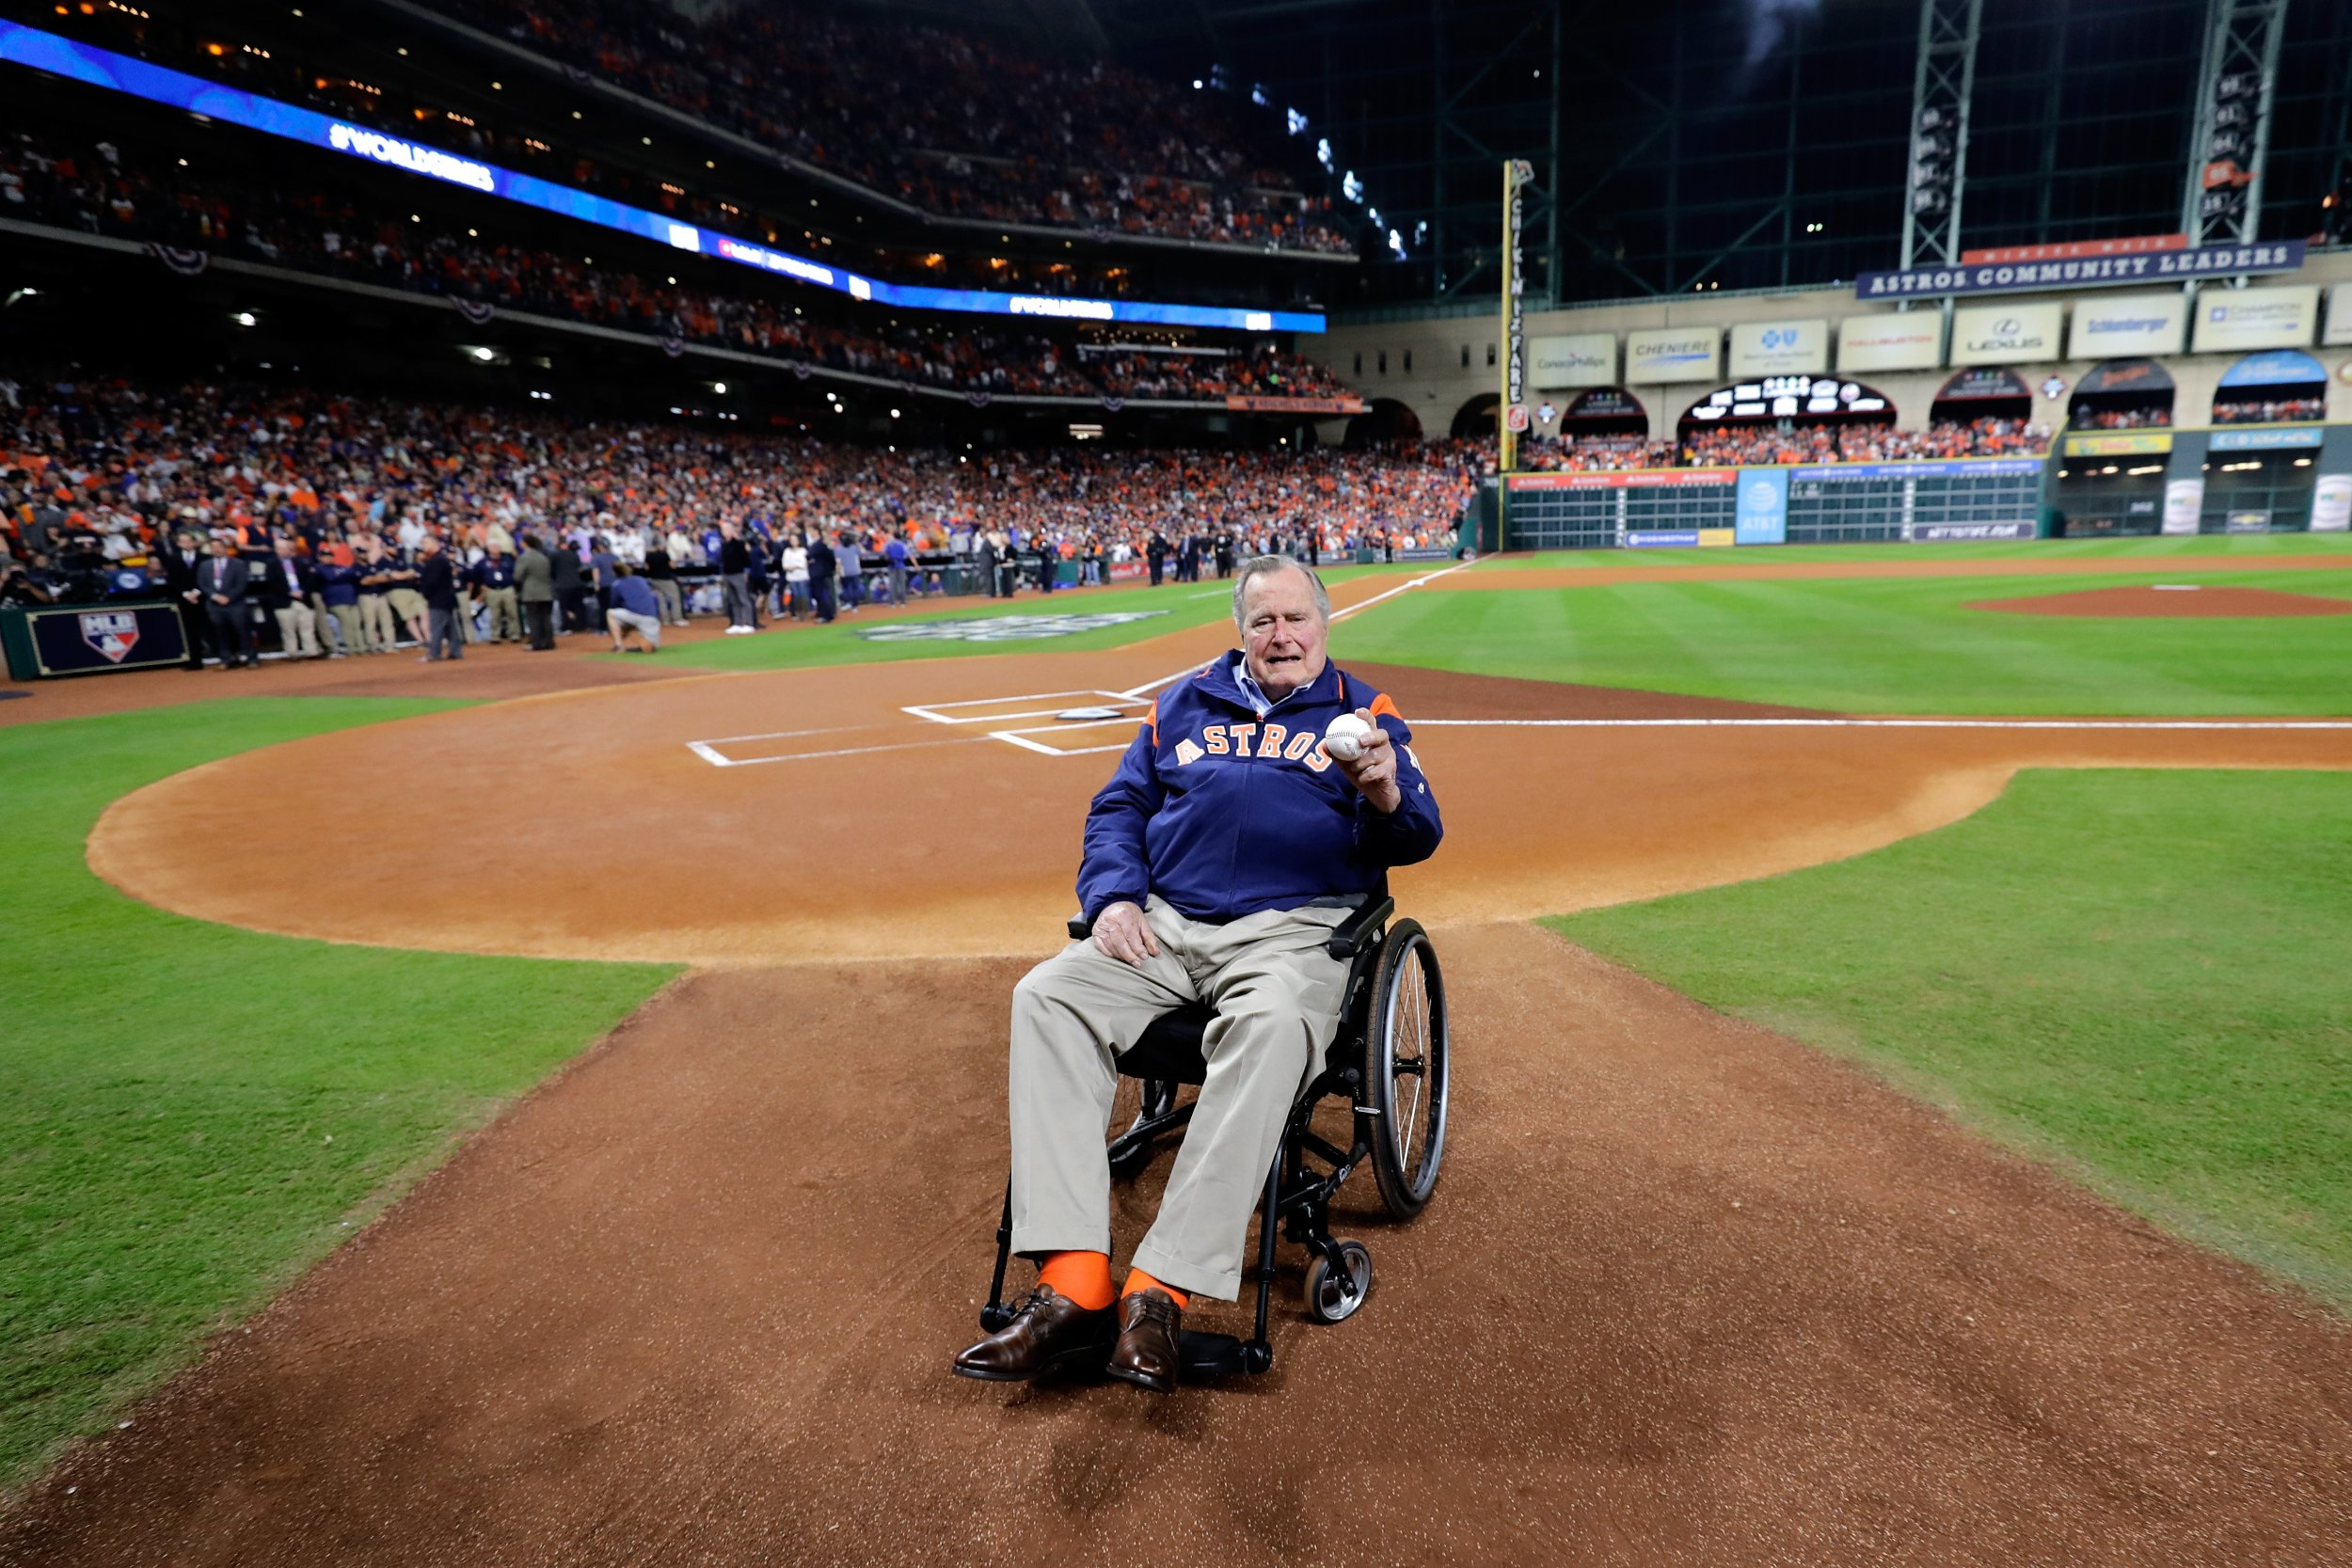 Bush at Houston Astros game